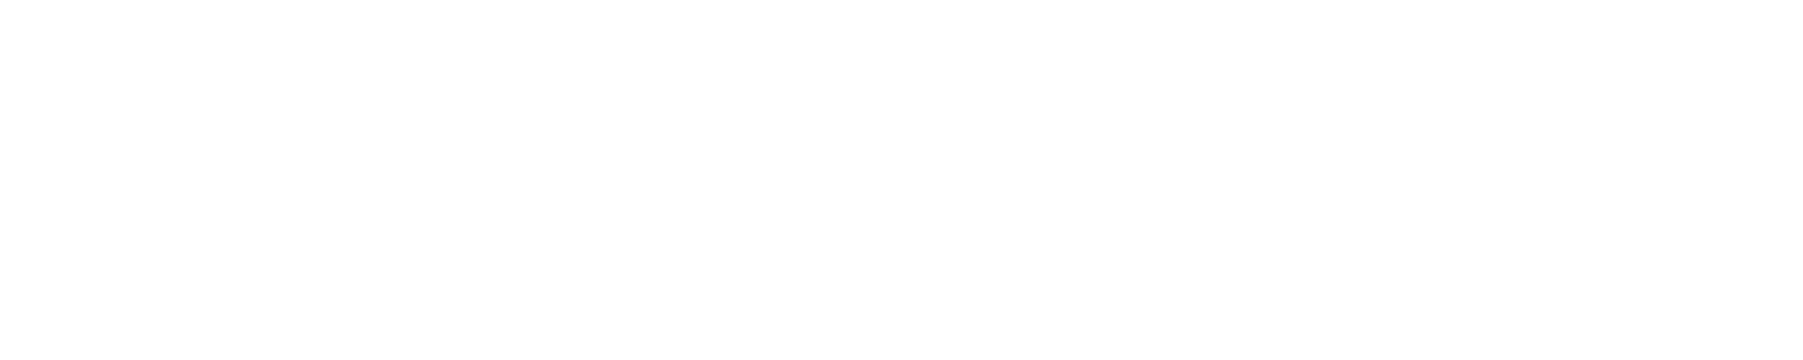 LiveWellDieWellLogo.png